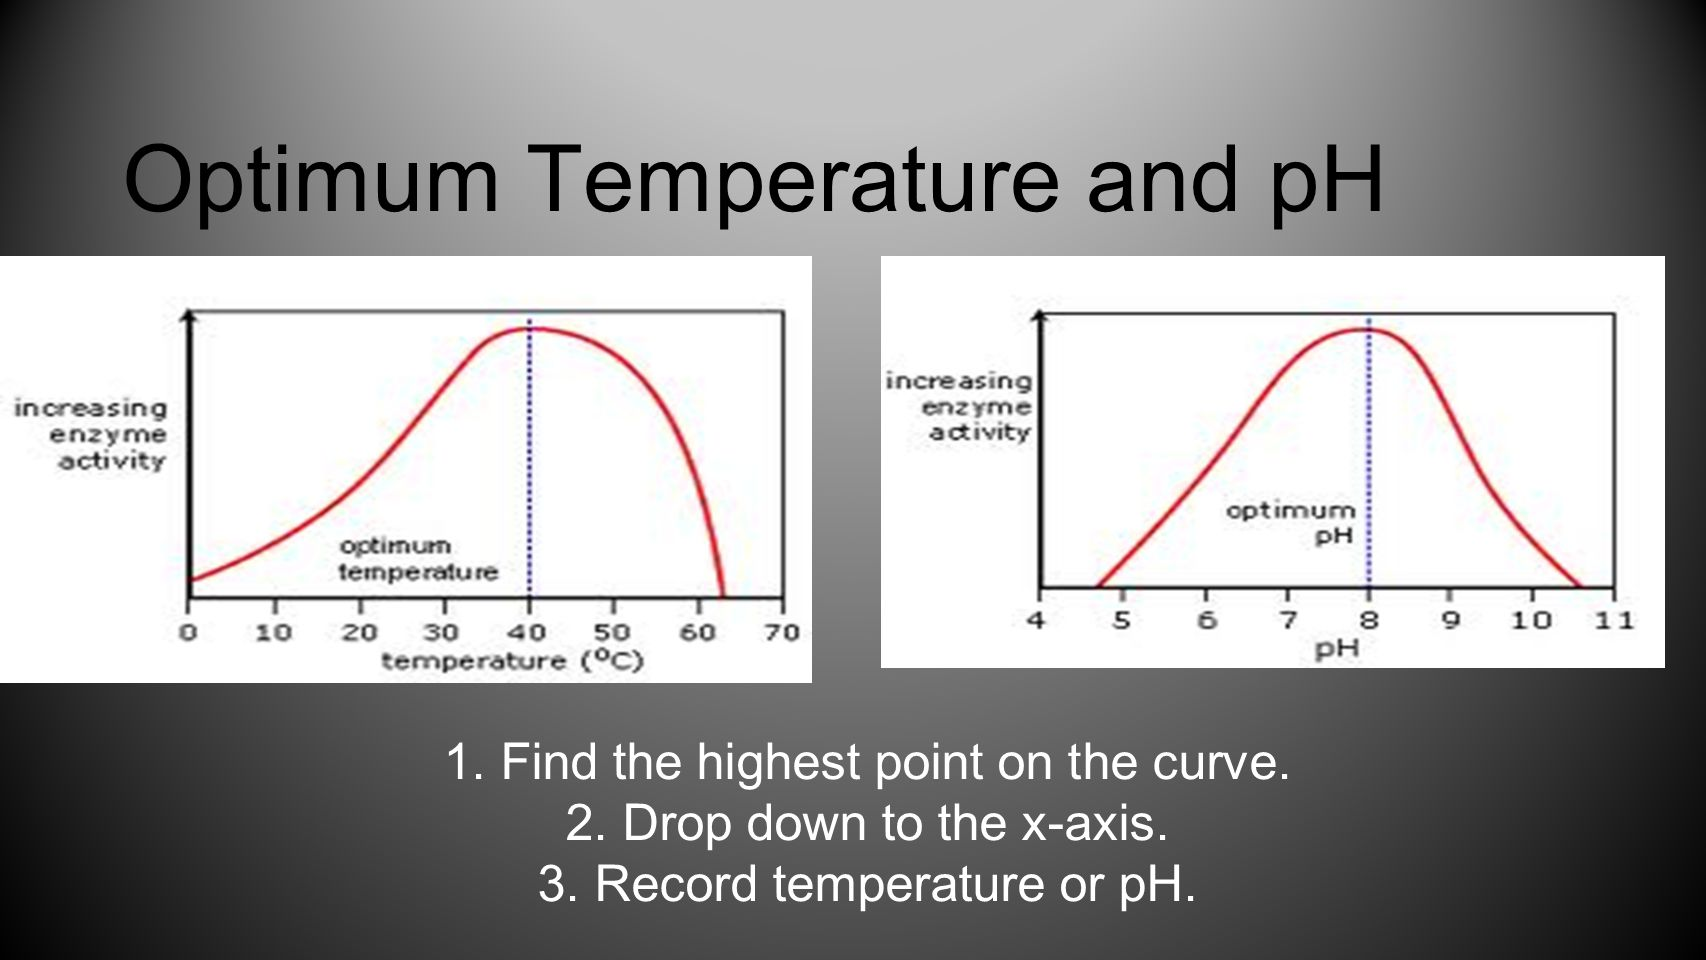 Optimum Temperature and pH 1.Find the highest point on the curve. 2.Drop down to the x-axis. 3.Record temperature or pH.